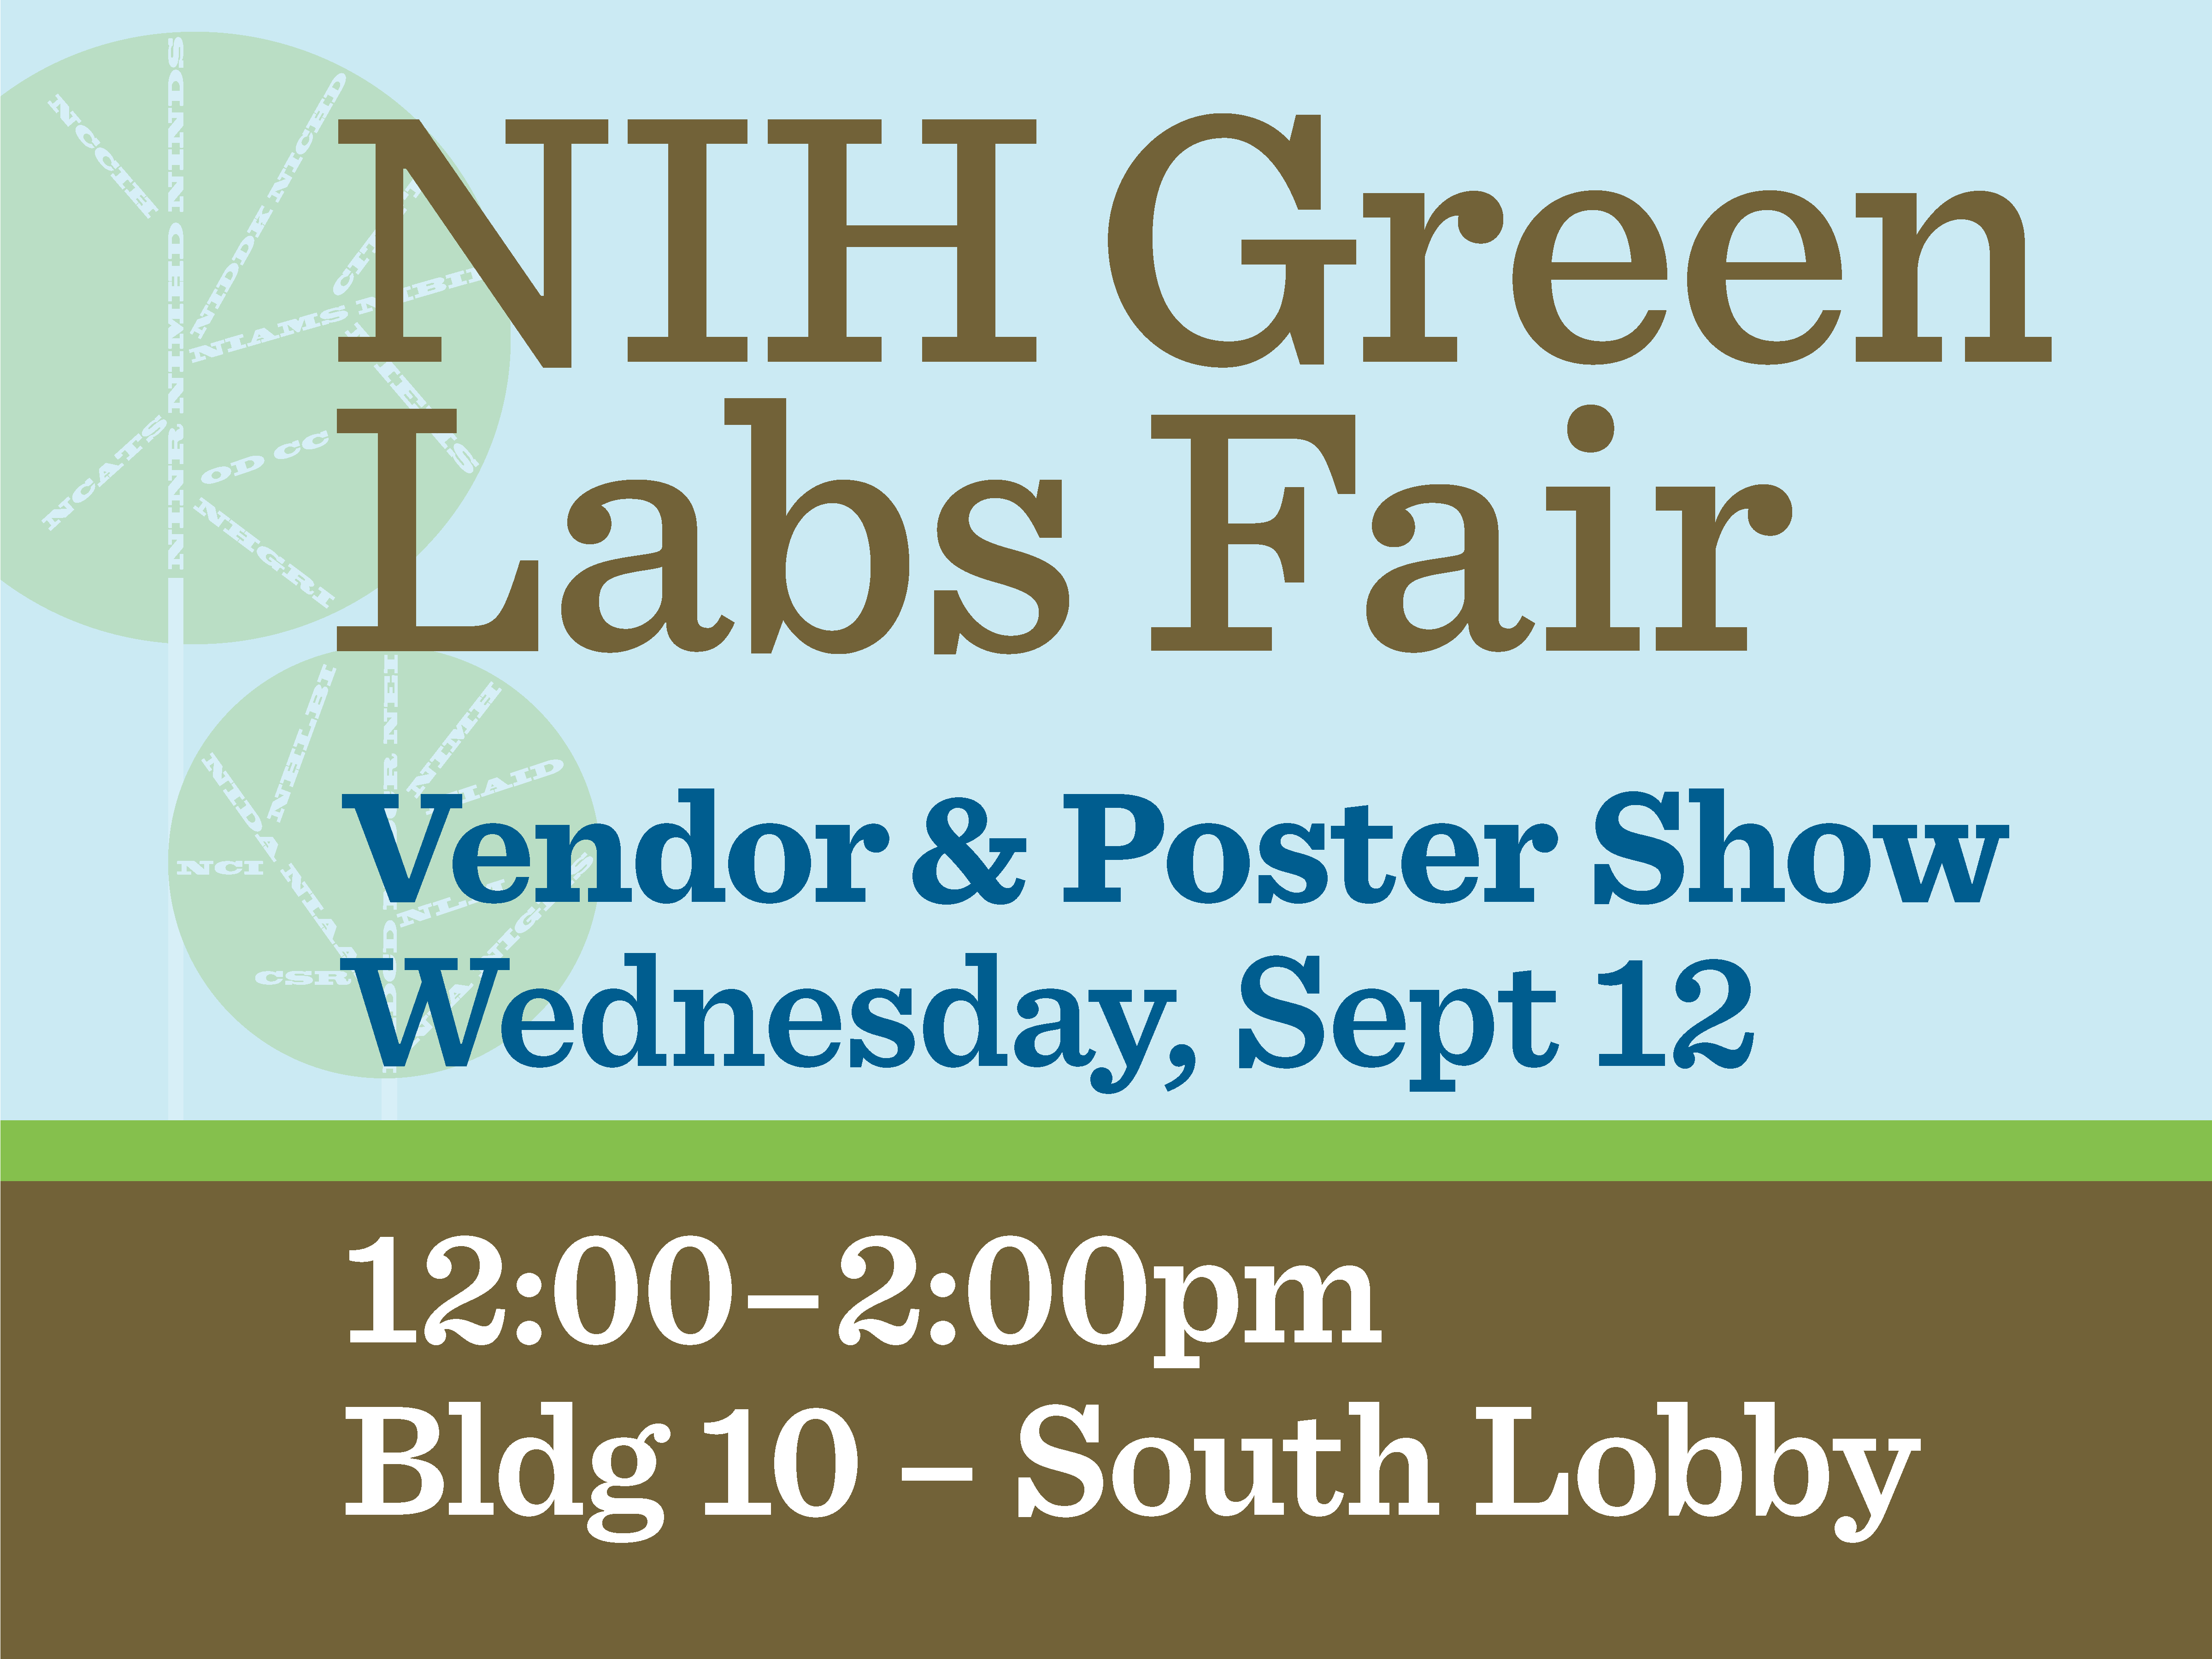 18x24 yard sign GreenLabsFair 2018 V1.png